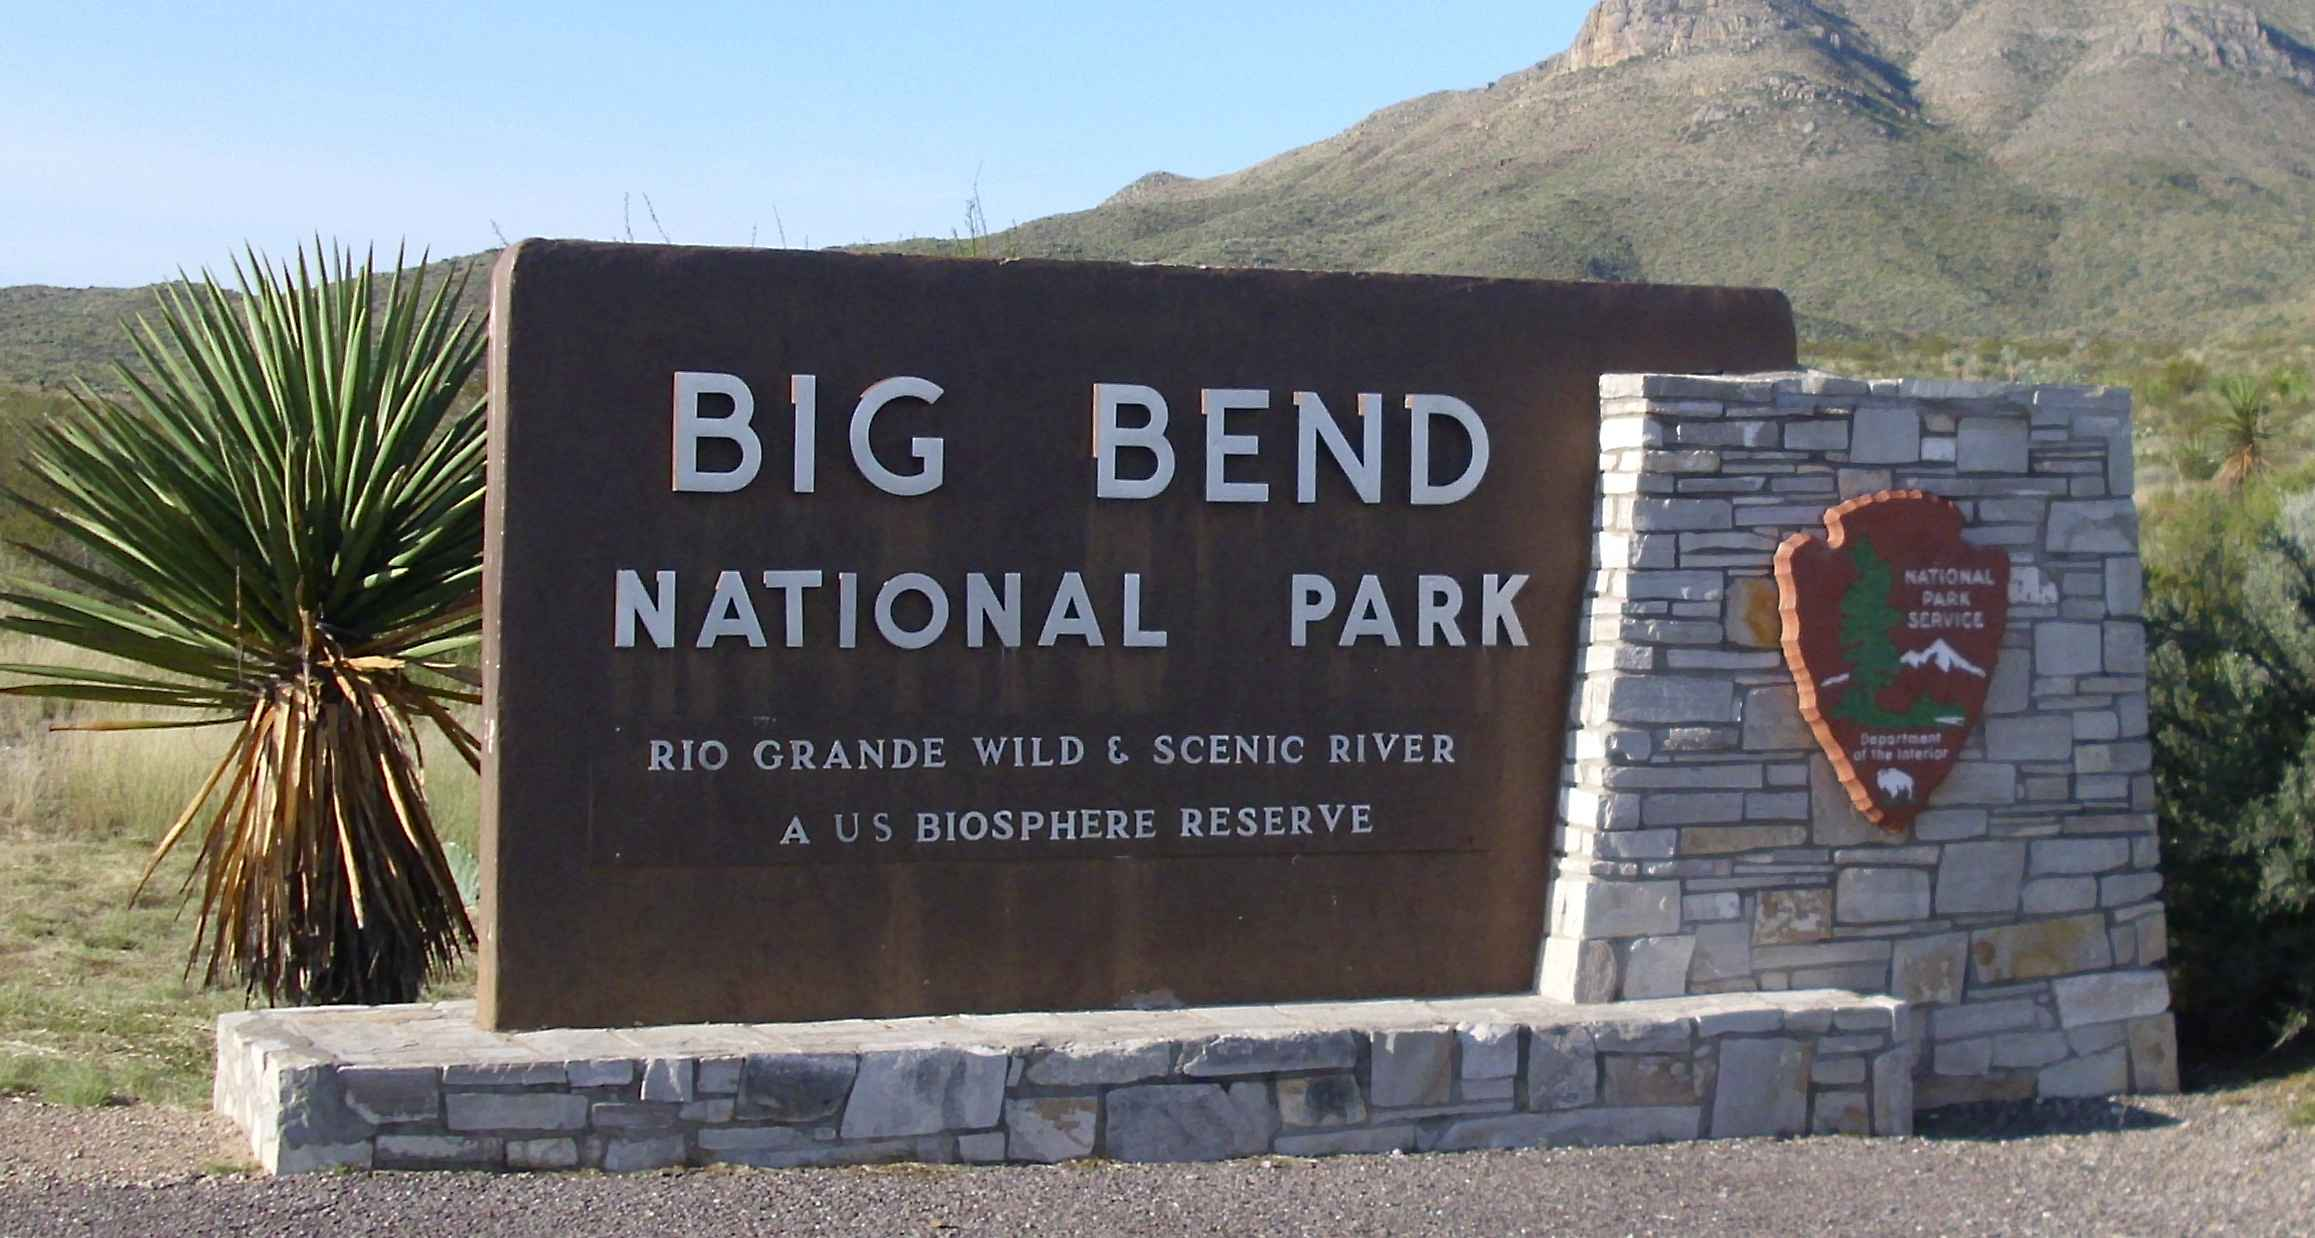 http://upload.wikimedia.org/wikipedia/commons/c/c4/USA_Texas_Big_Bend_Sign_09-10-20.jpg